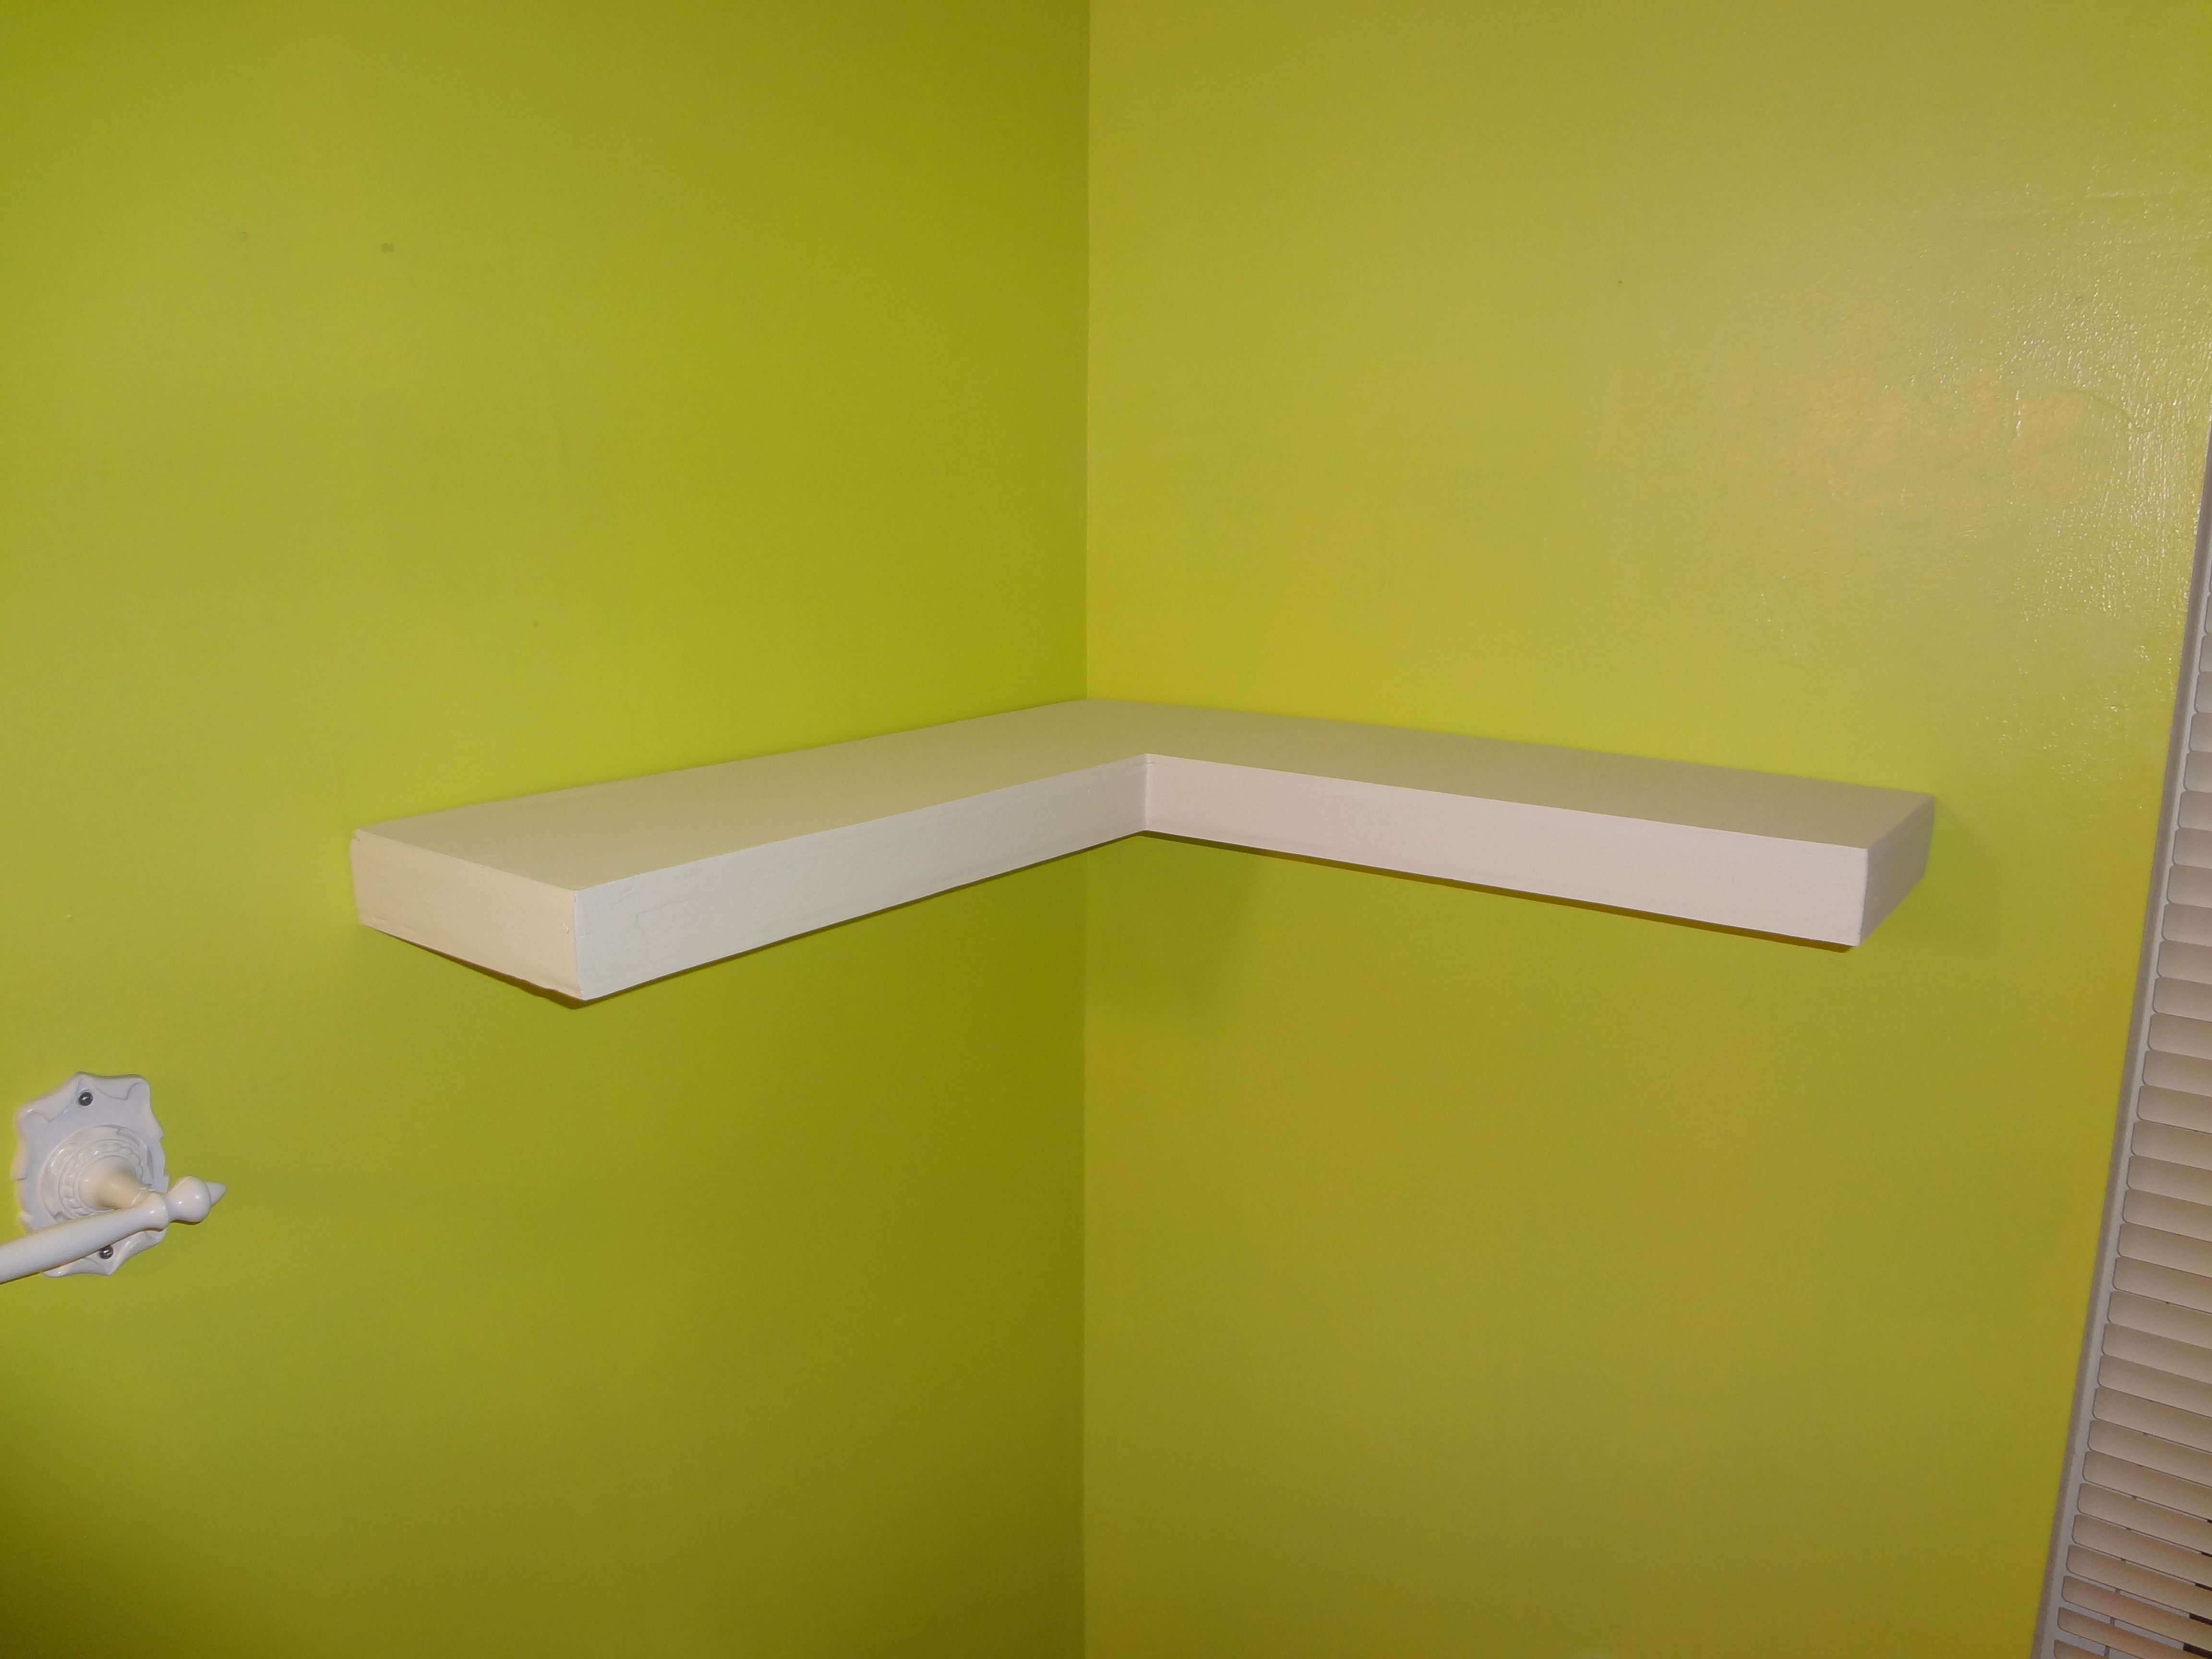 Pa hrefhttpana whitesitesdefaultfiles the best floating wall mounted shelves pictures amipublicfo Images